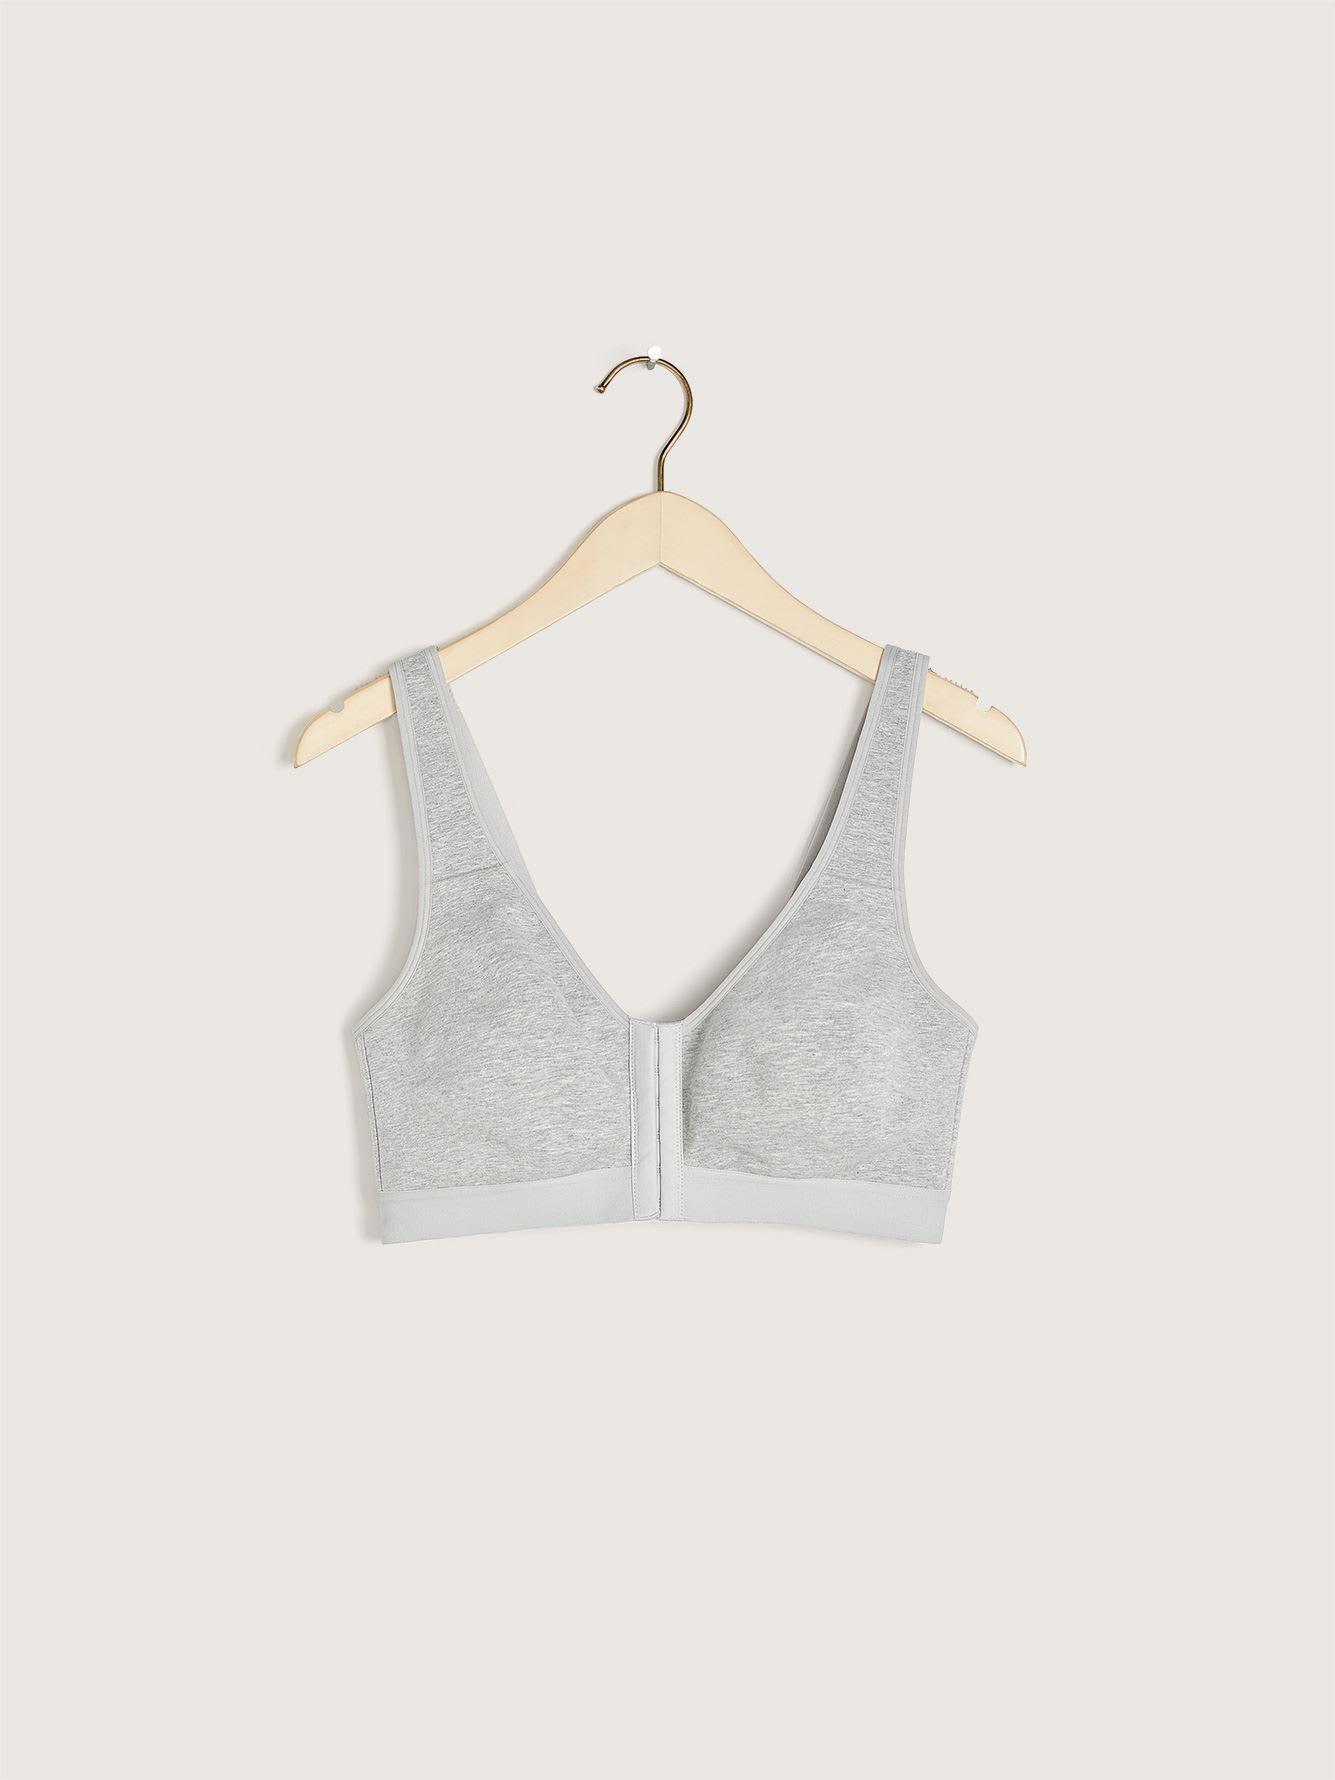 Front Closure Wirefree Heathered Cotton Bra